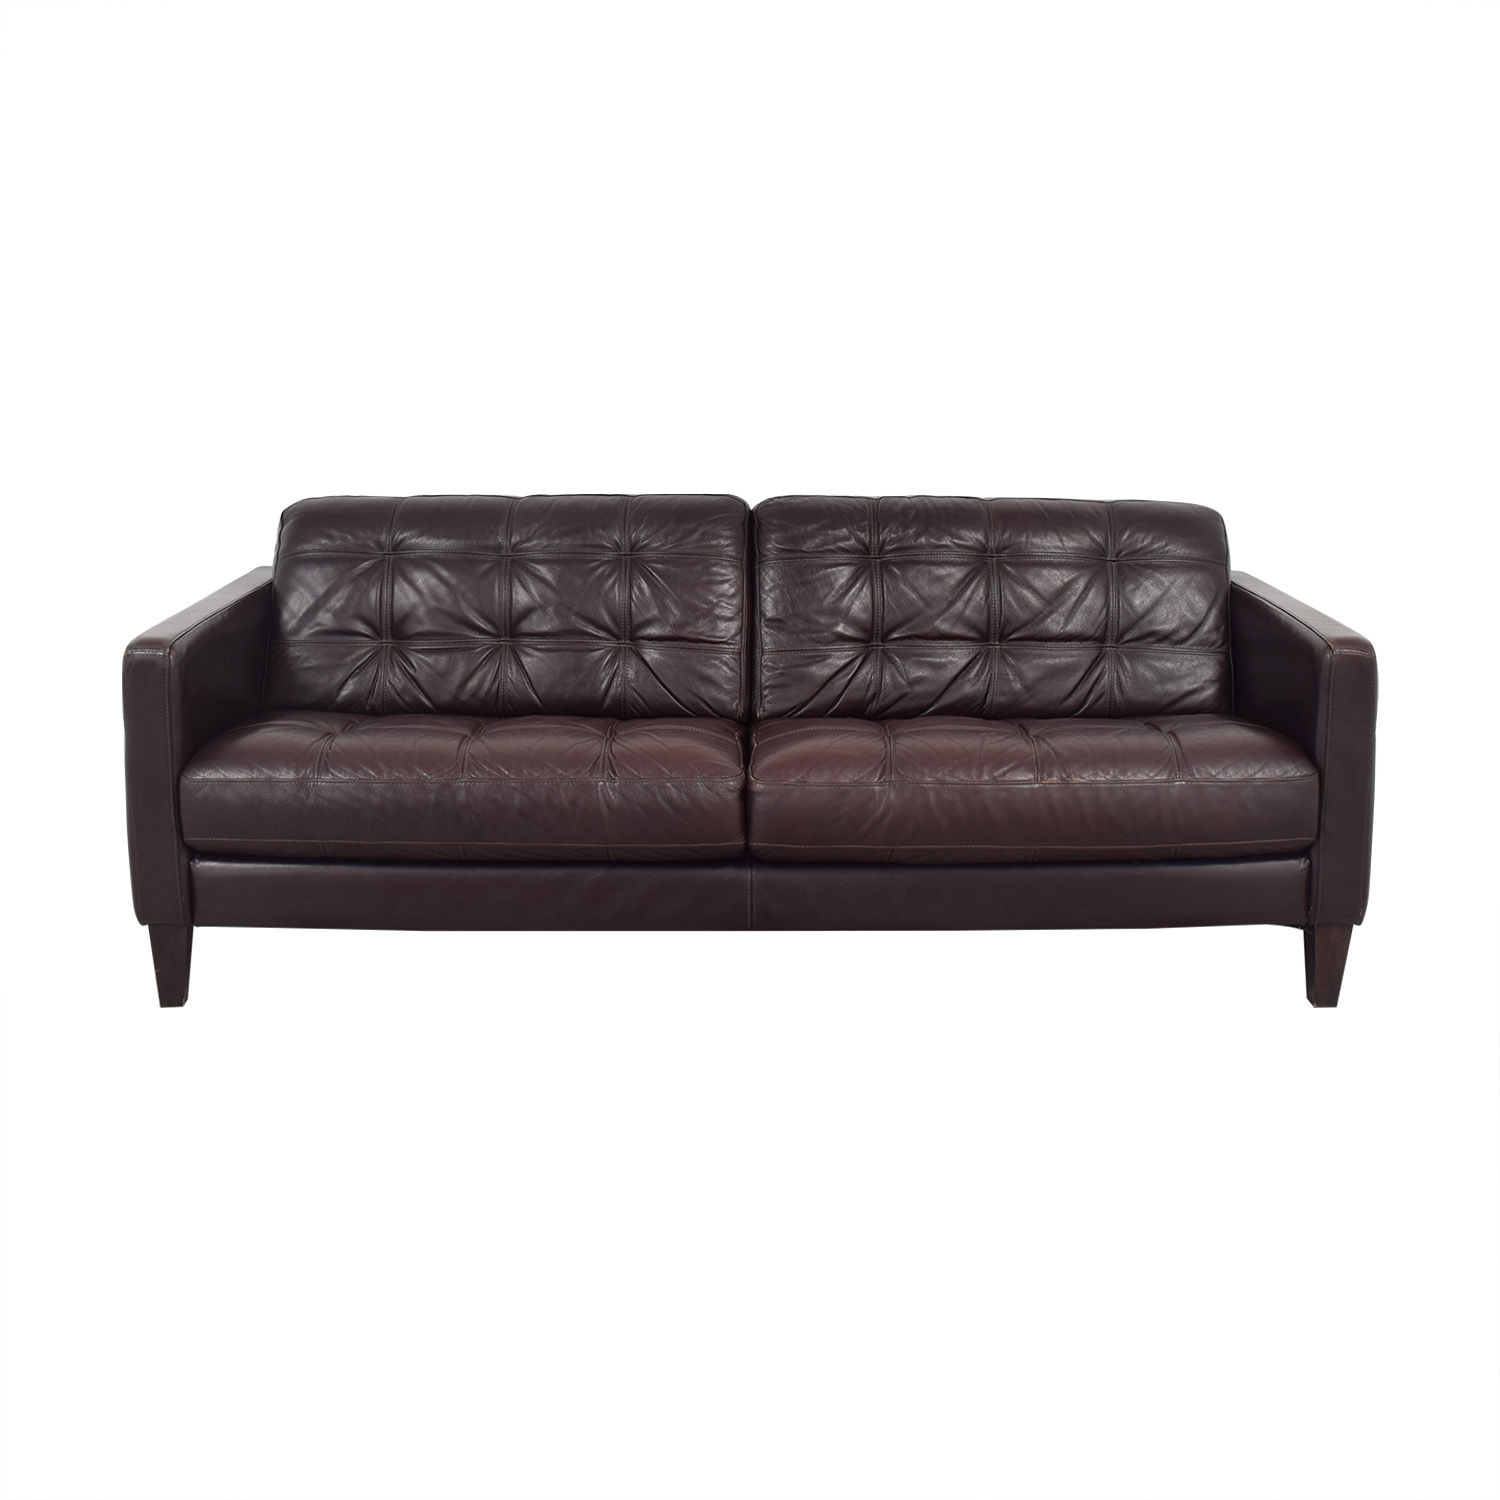 buy Macy's Tufted Two Cushion Sofa Macy's